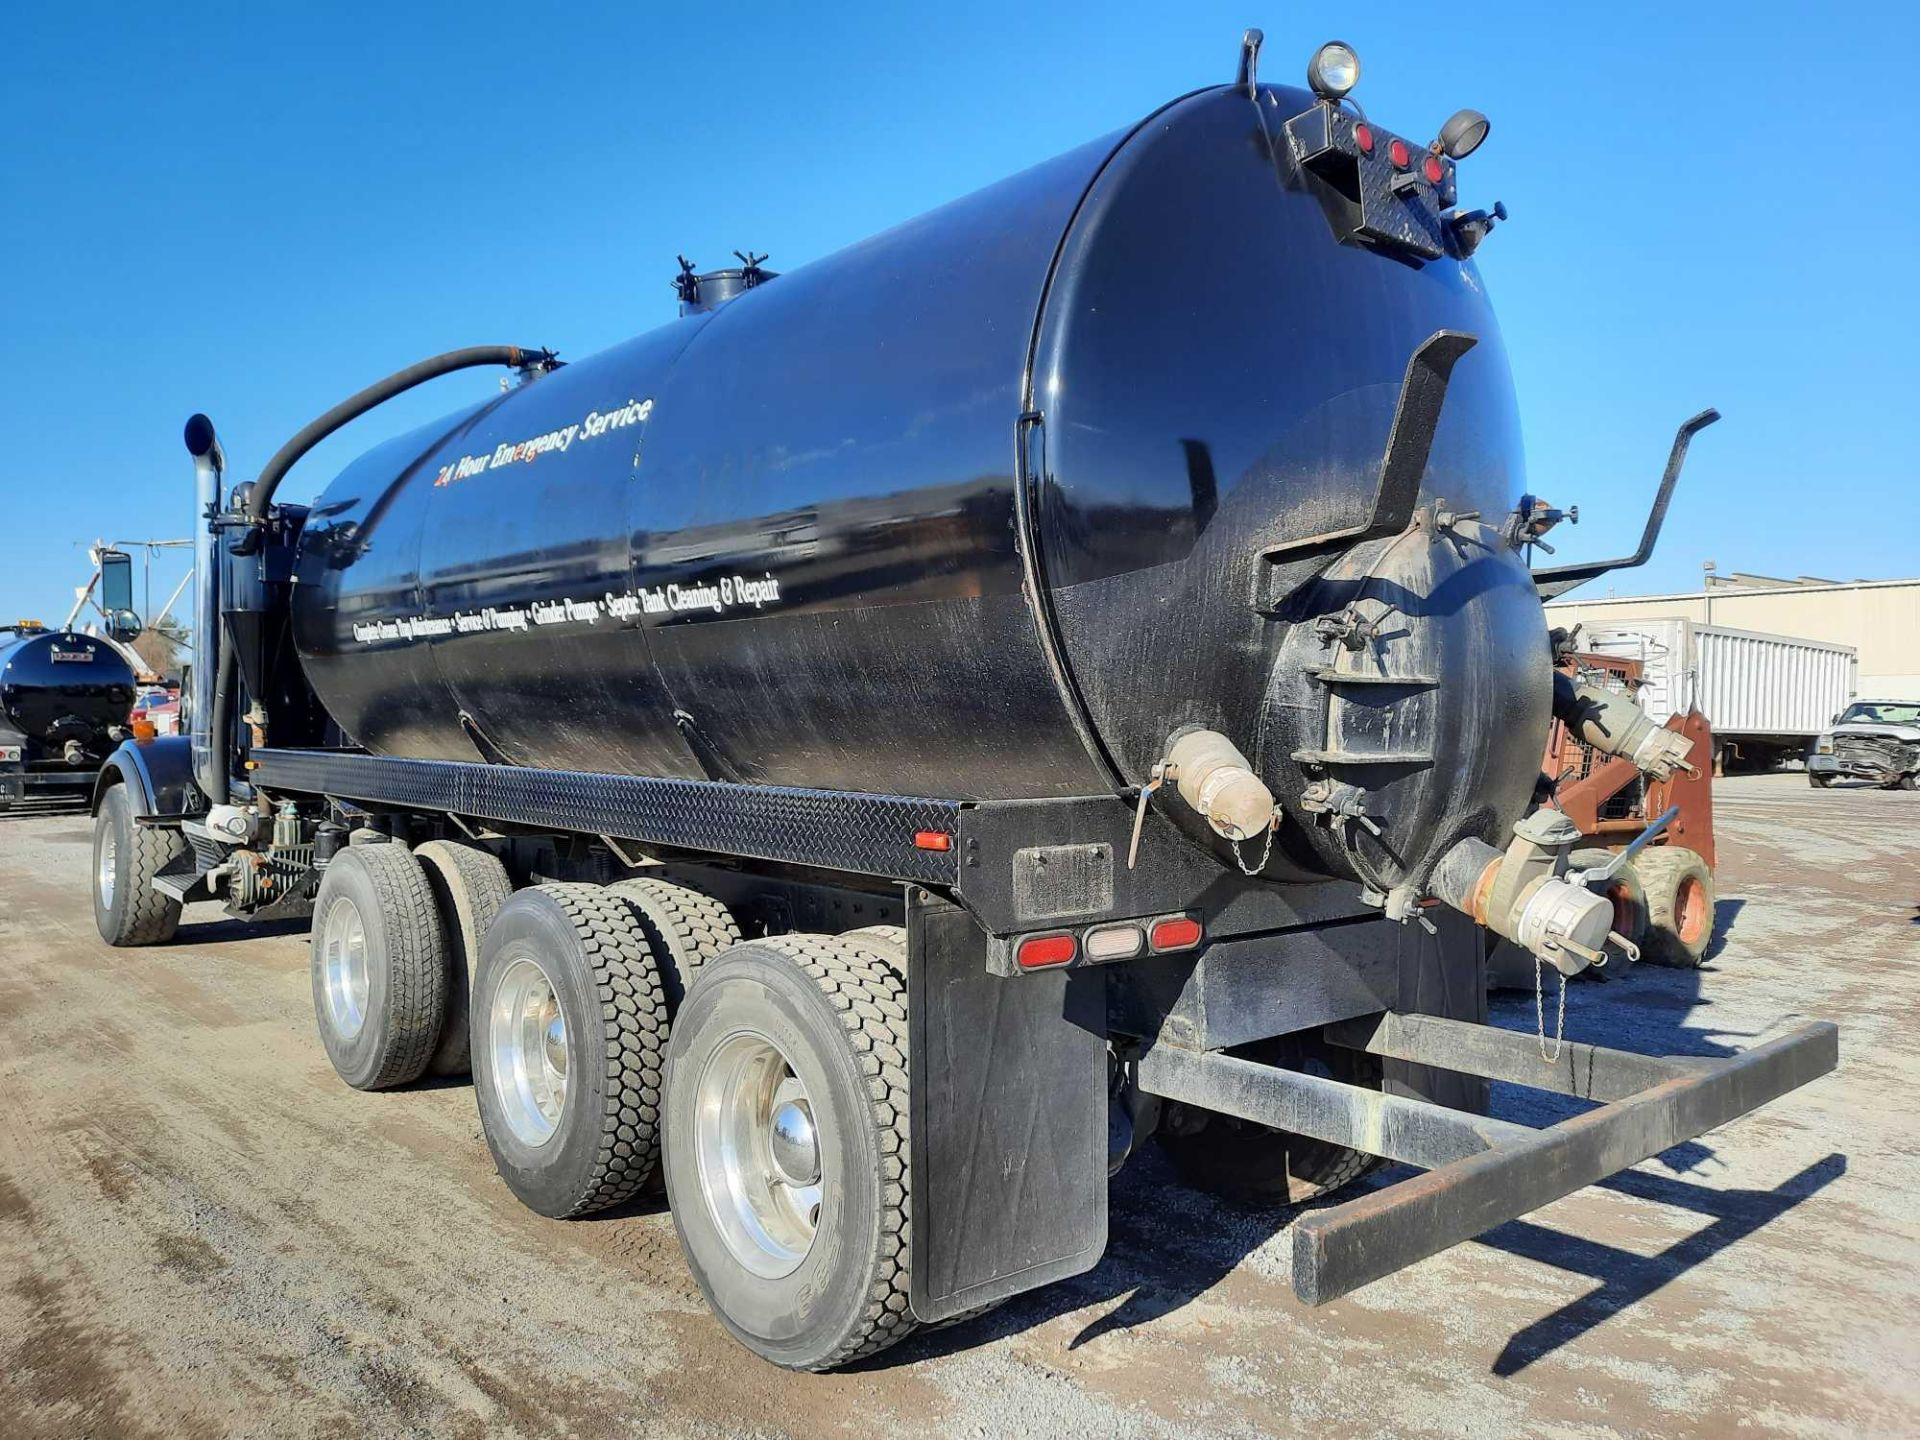 2003 KENWORTH T 800 SEPTIC TANK TRUCK - Image 2 of 25